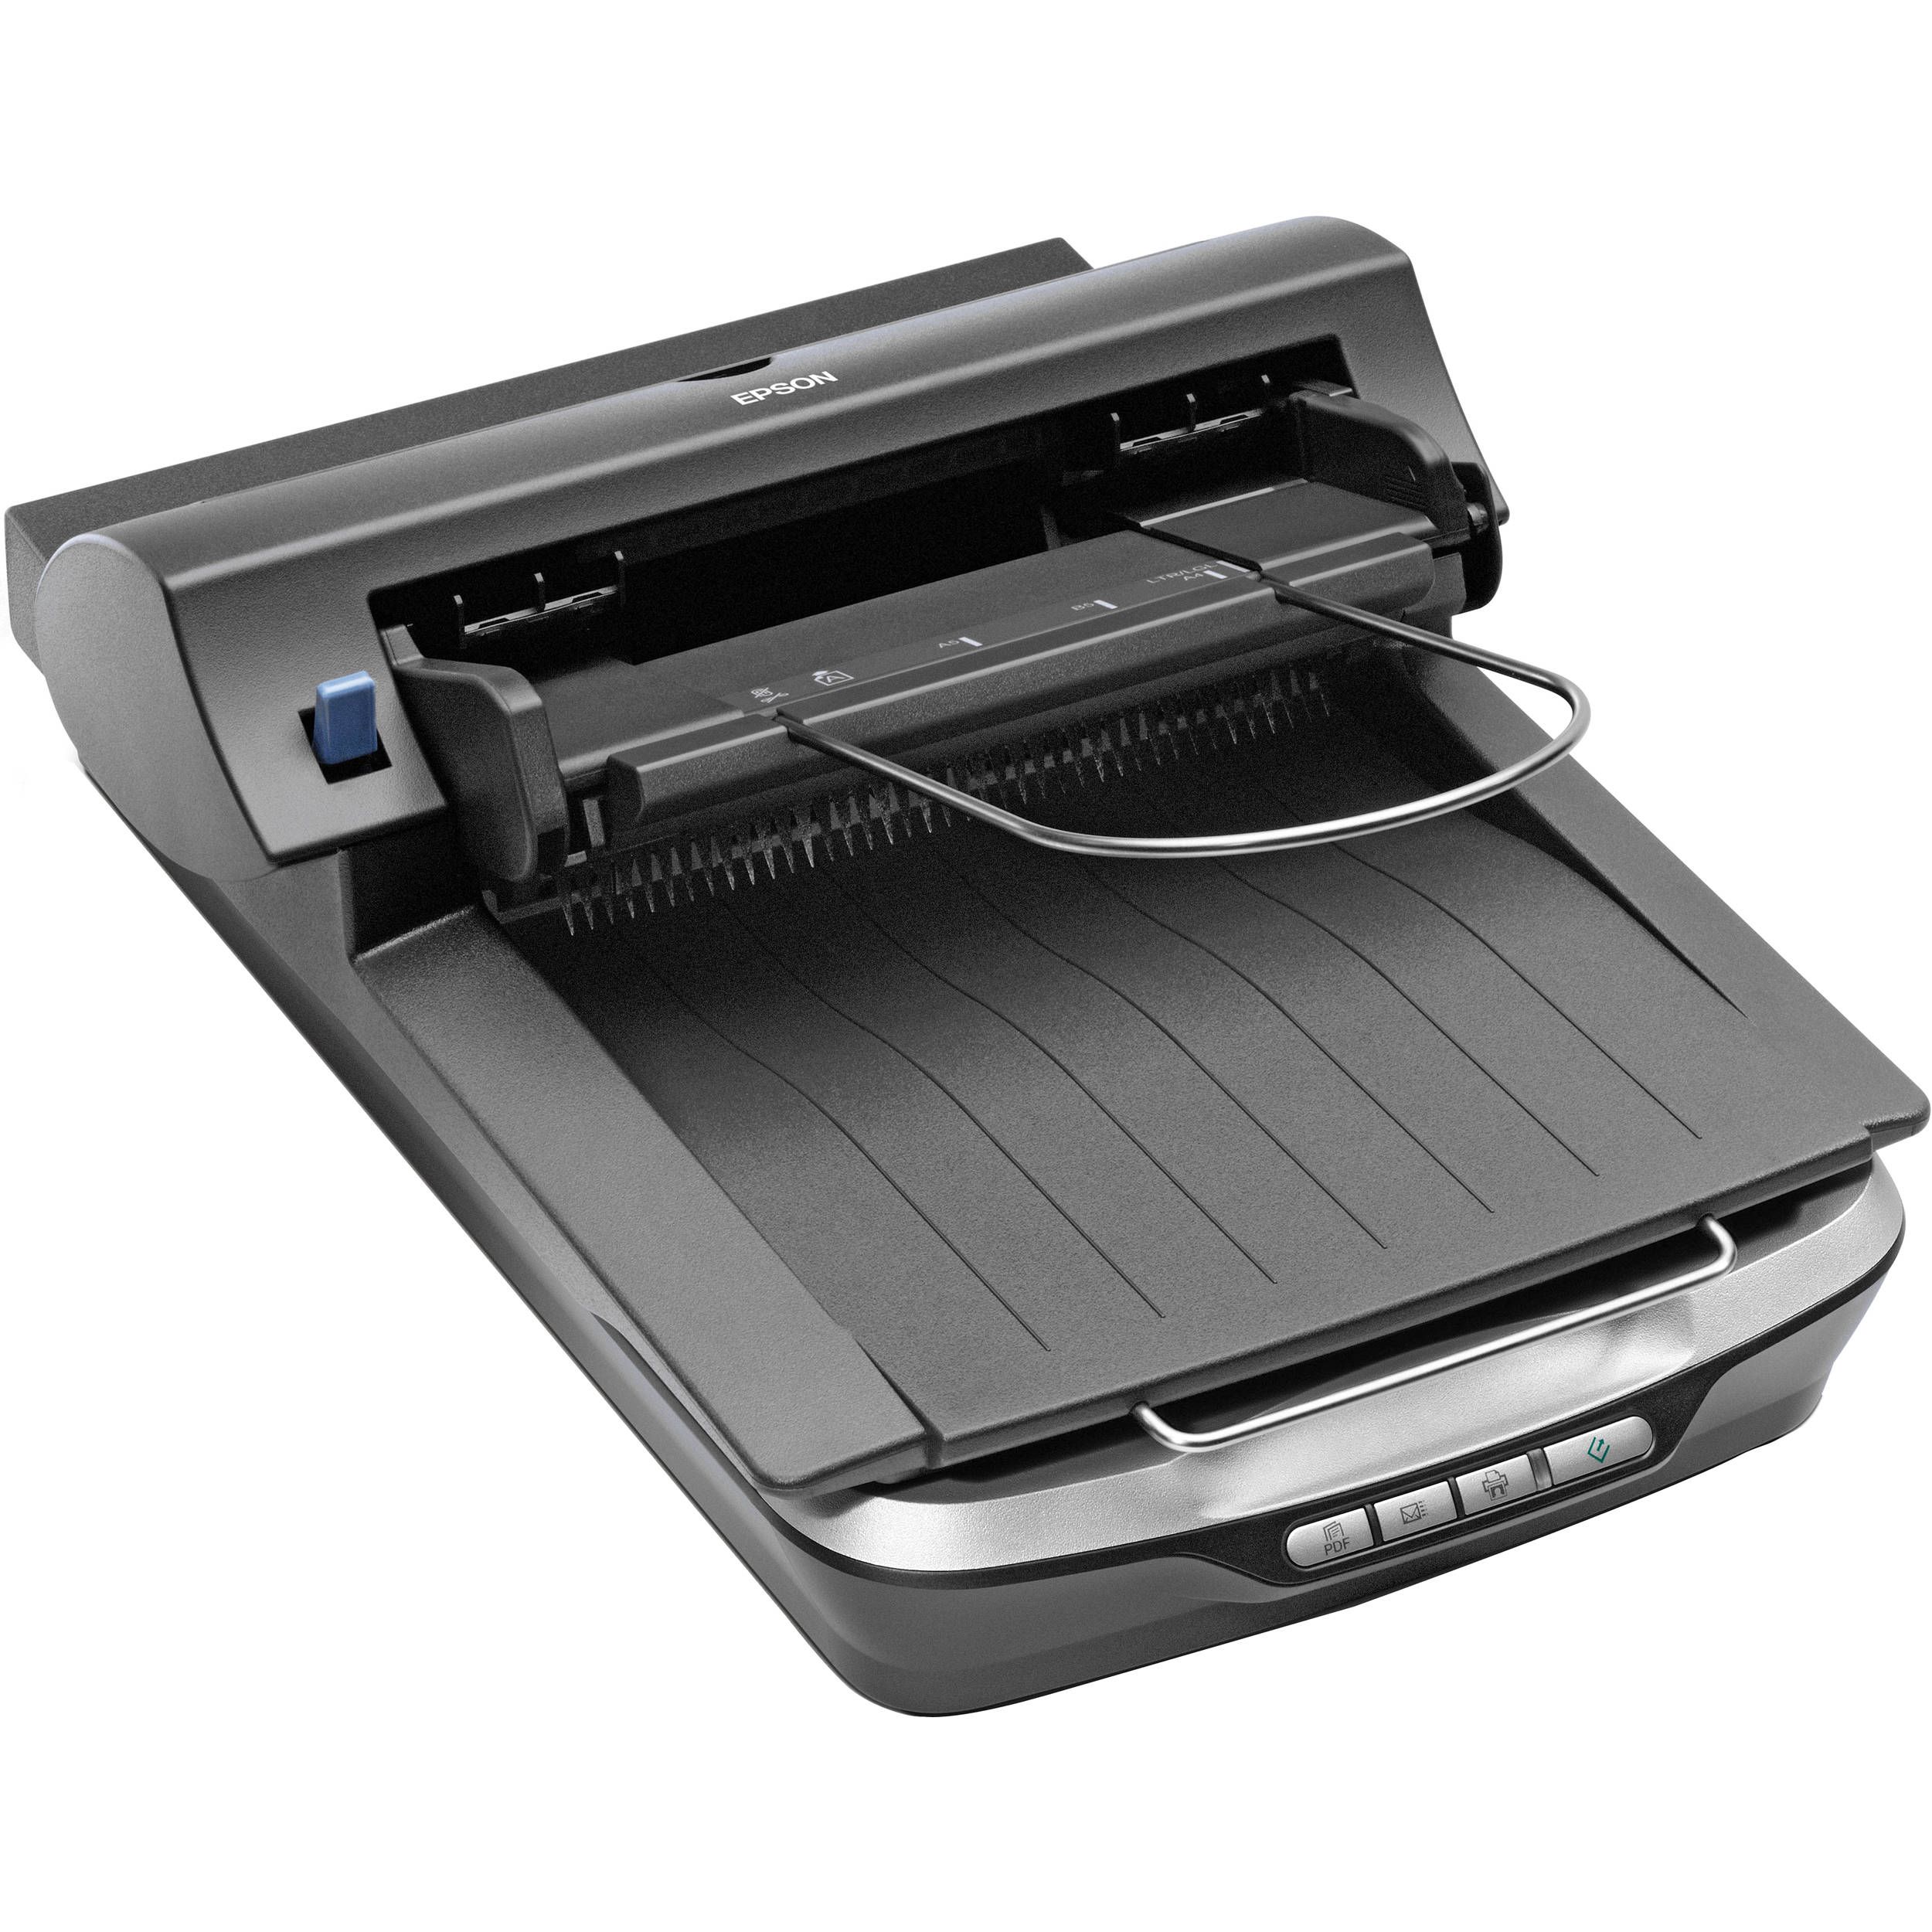 epson perfection v500 office scanner b11b189071 b h photo video rh bhphotovideo com epson perfection v500 photo scanner instruction manual epson perfection v500 photo scanner user manual